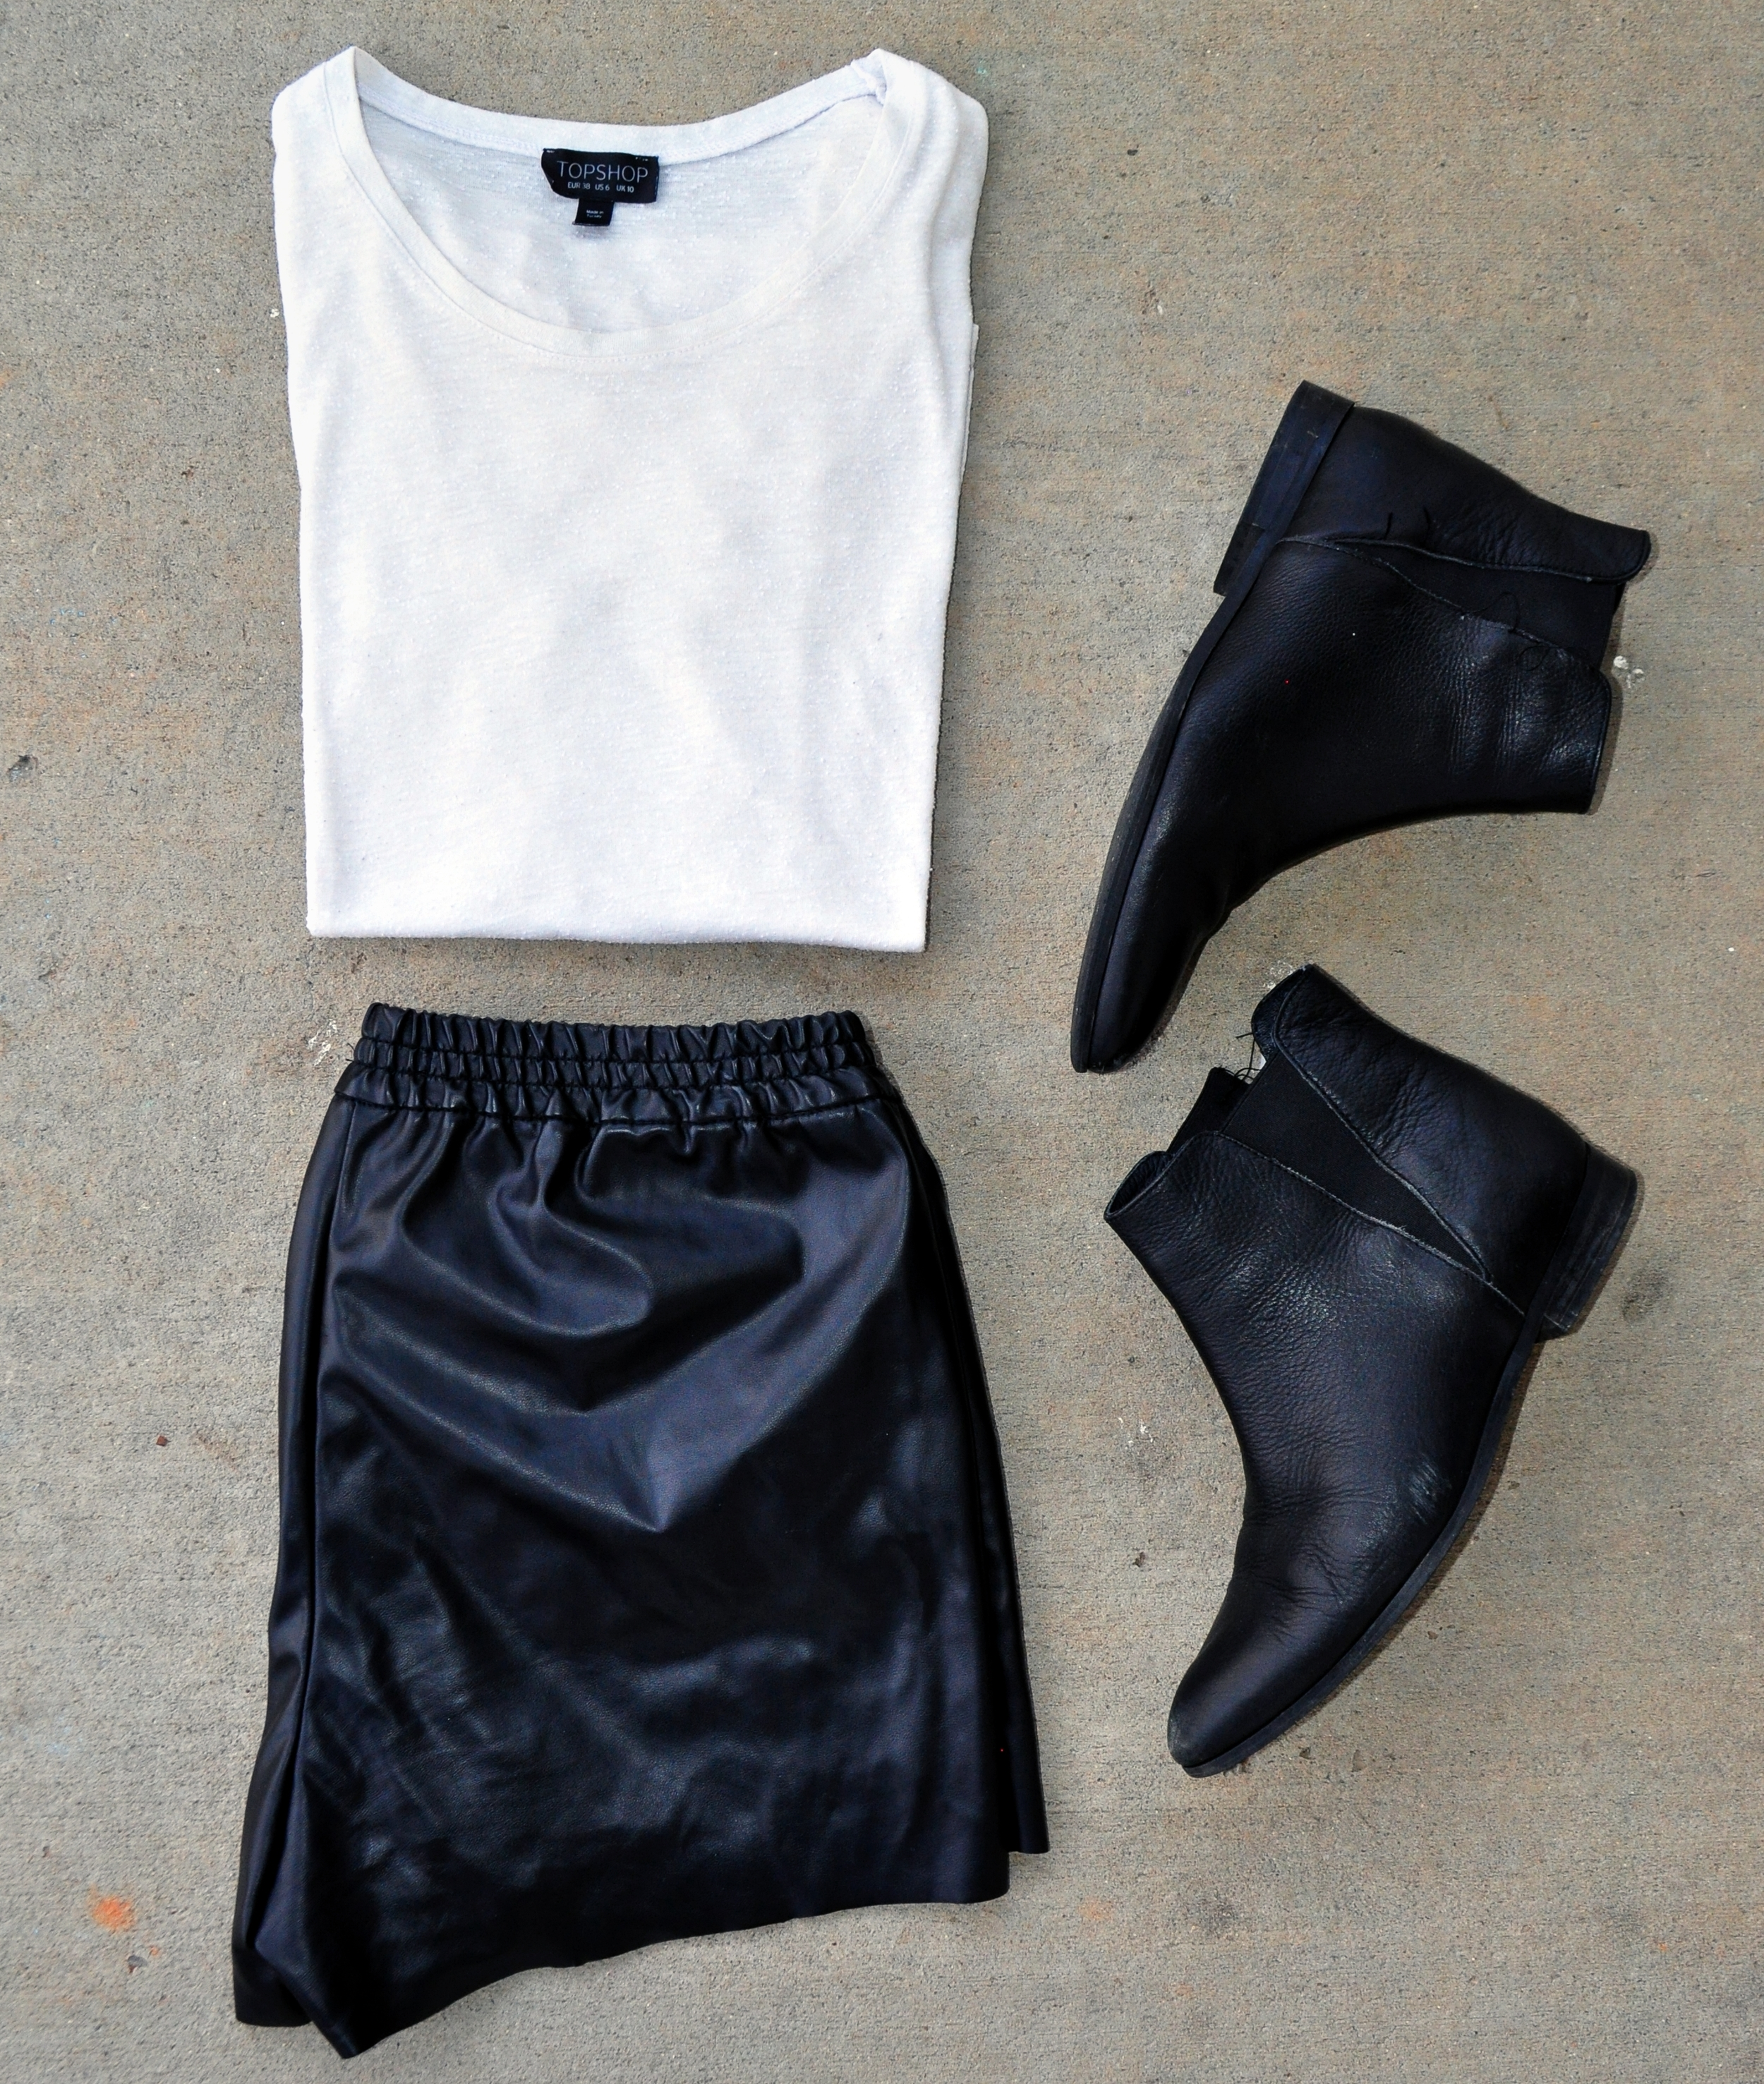 leather shorts pic 2.jpg